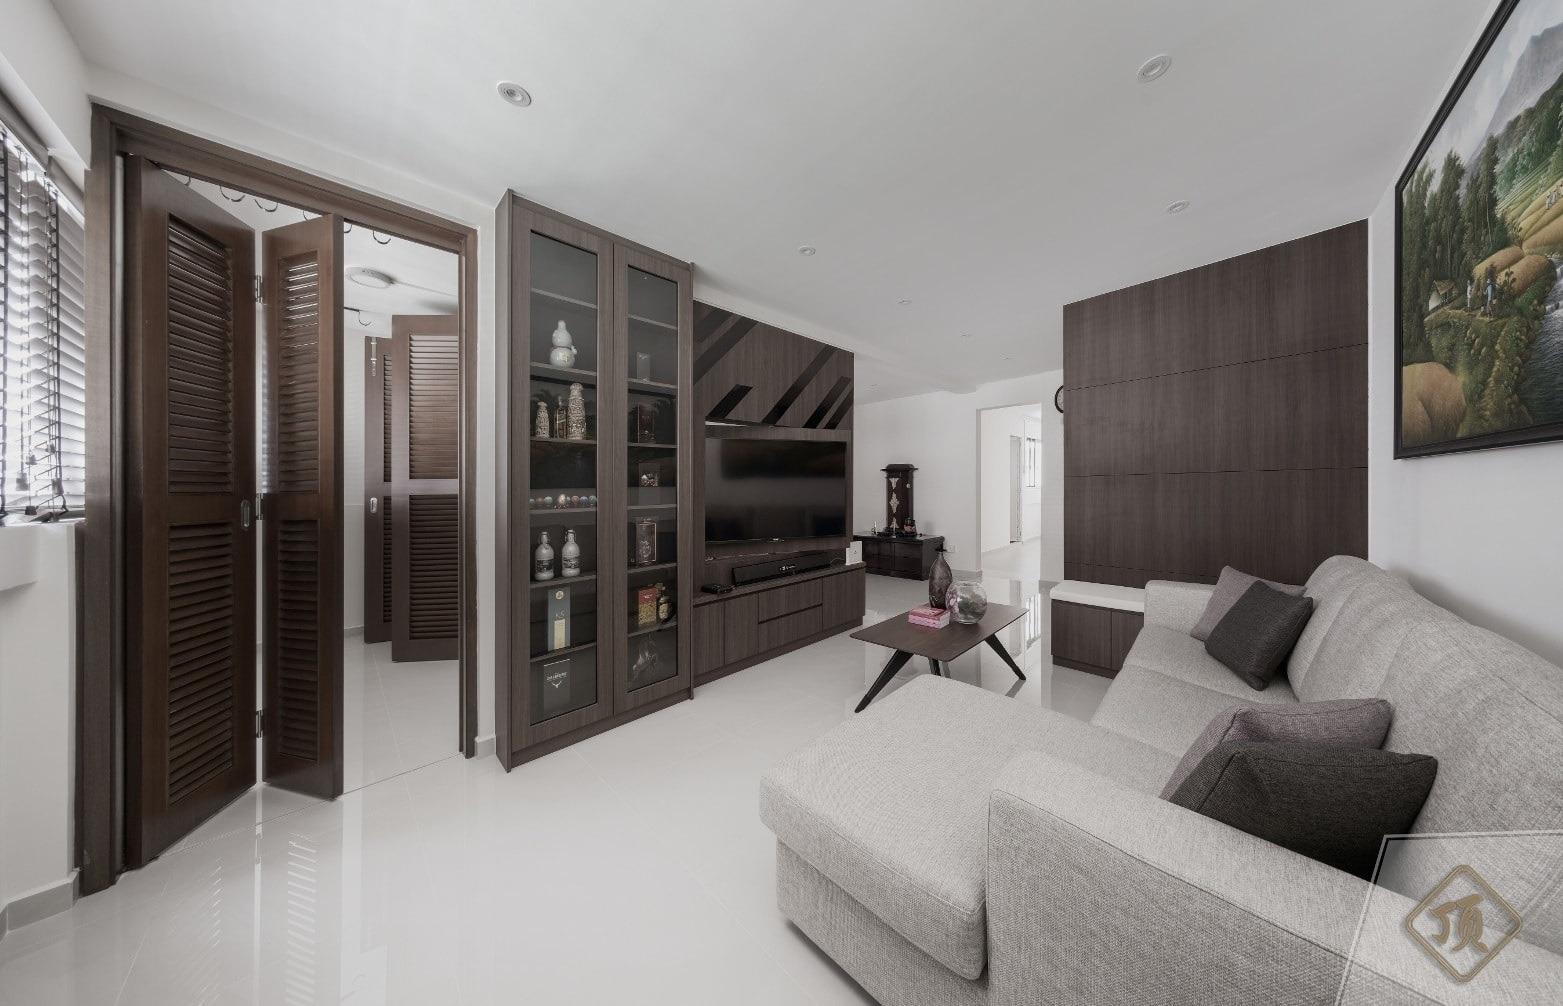 Home Remodeling image